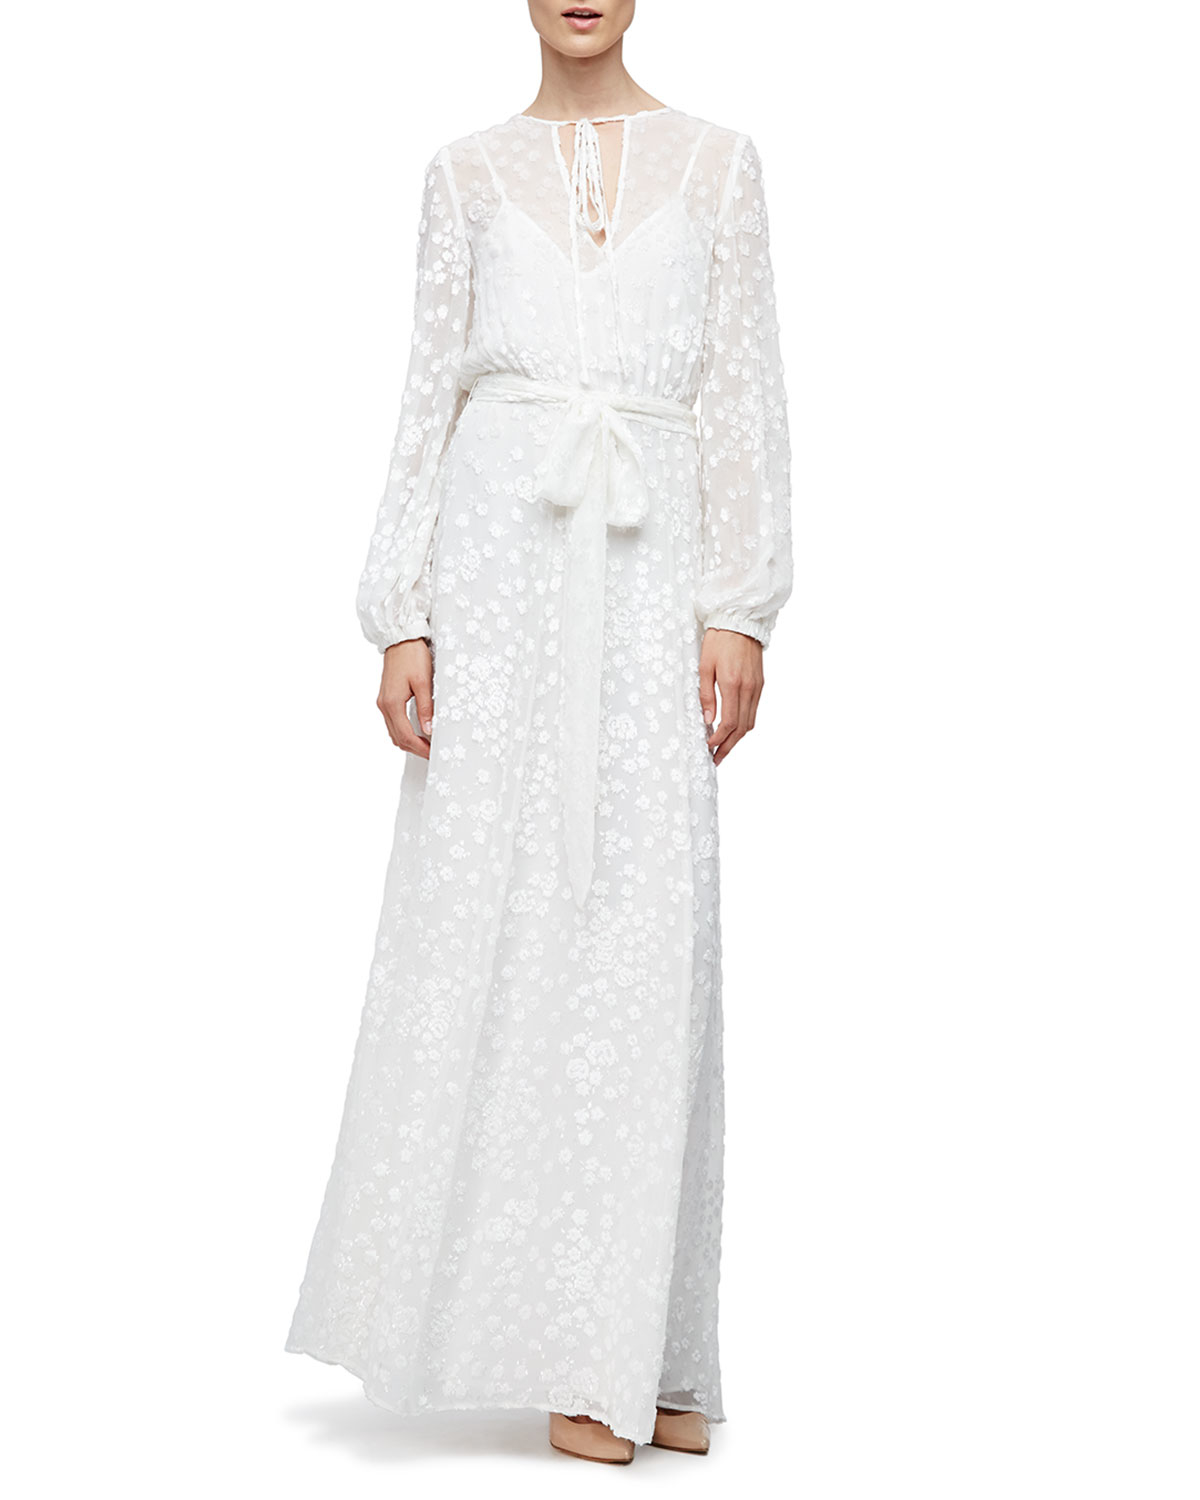 Midi Peasant Dress Co Long Sleeve Floral Embroidered Maxi